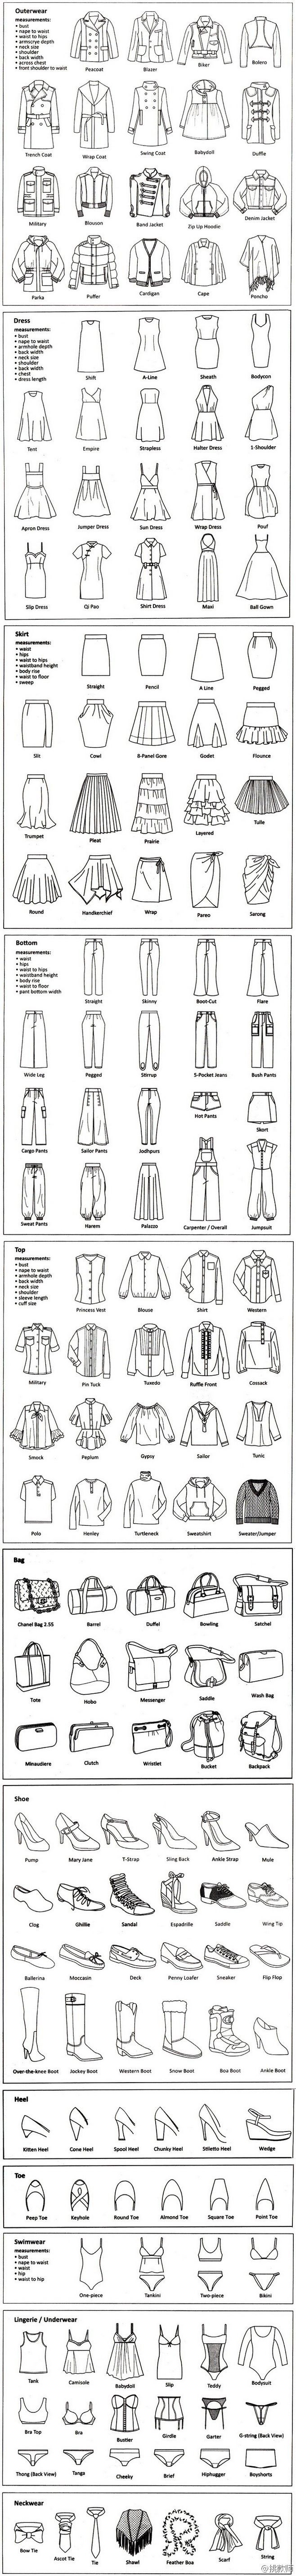 Garment fashion terminology